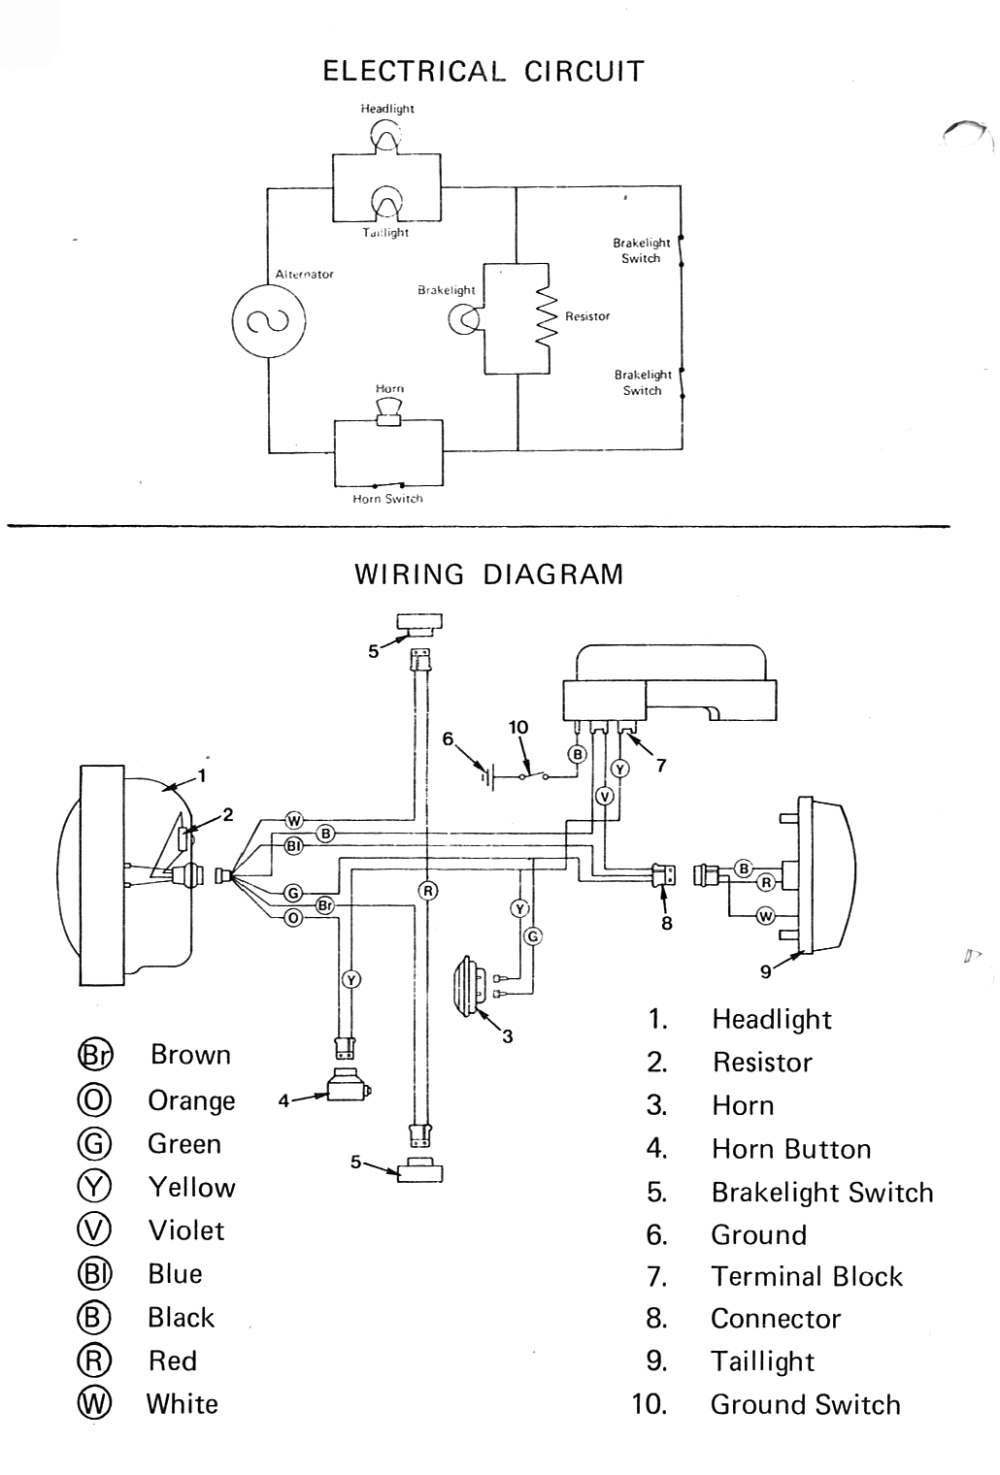 medium resolution of honda x8r wiring diagram schema diagram databasex8r wiring diagram search wiring diagram honda x8r wiring diagram